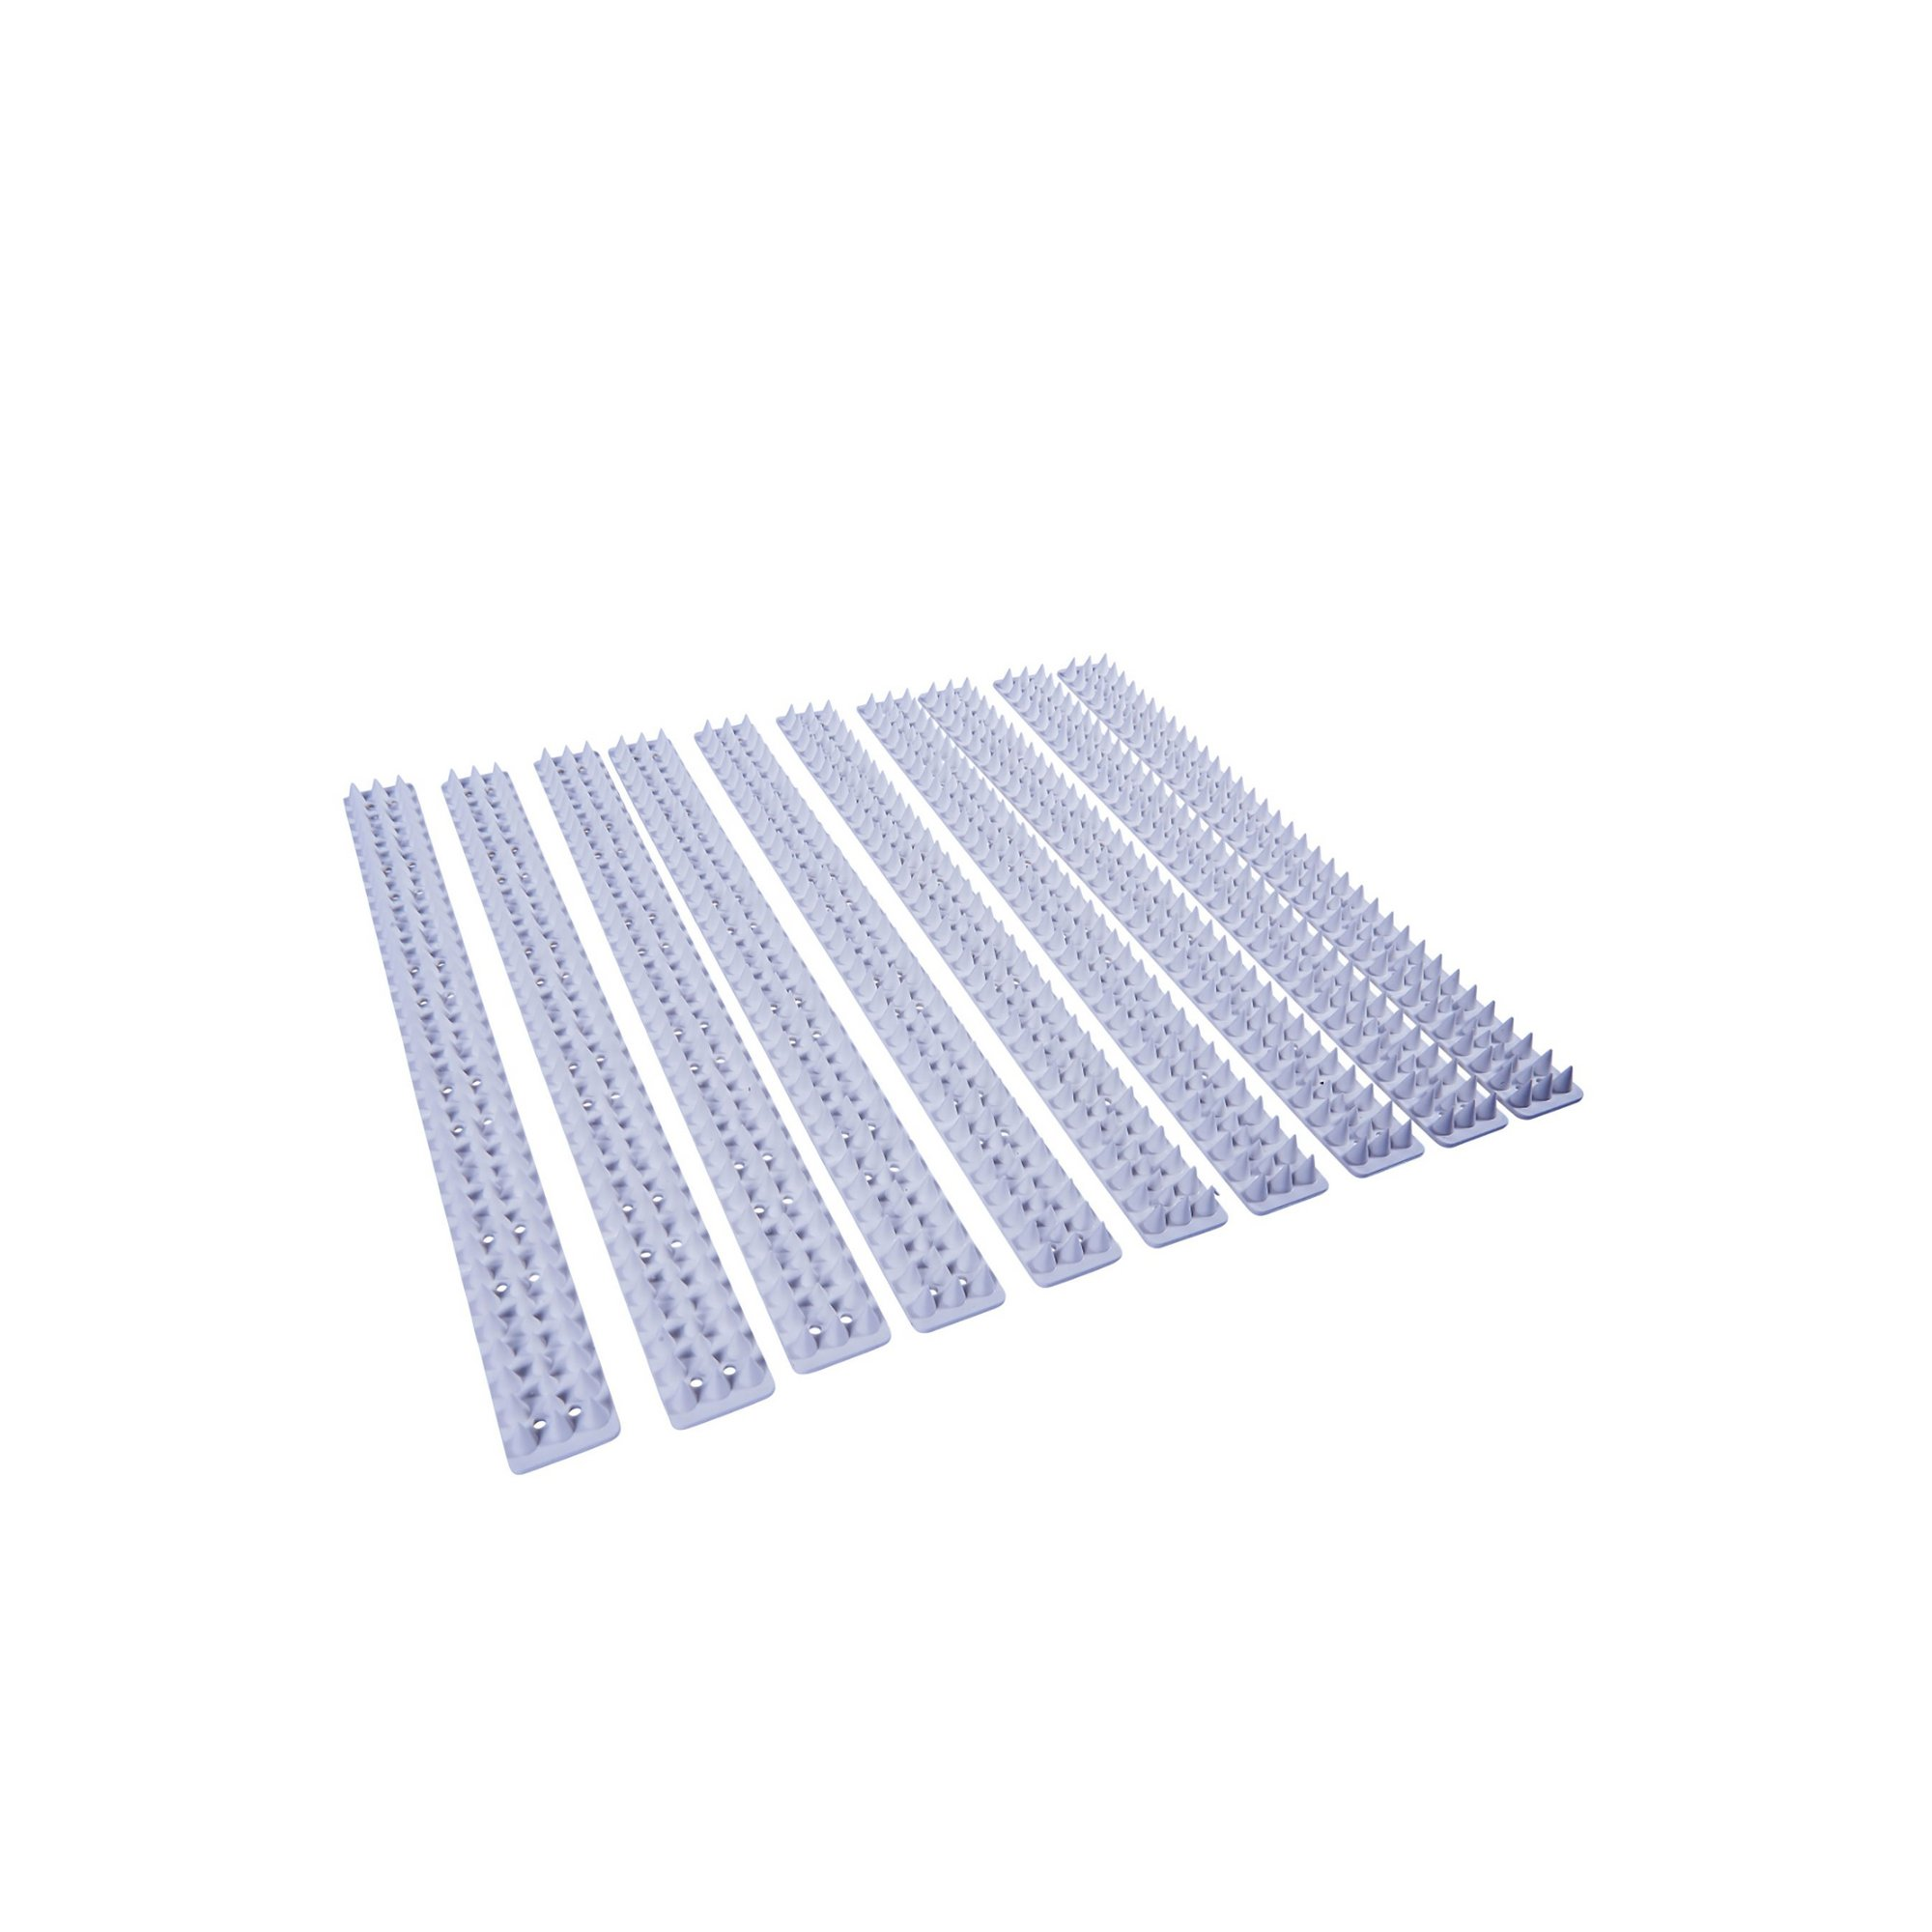 Image of 10 Piece White Security Spikes